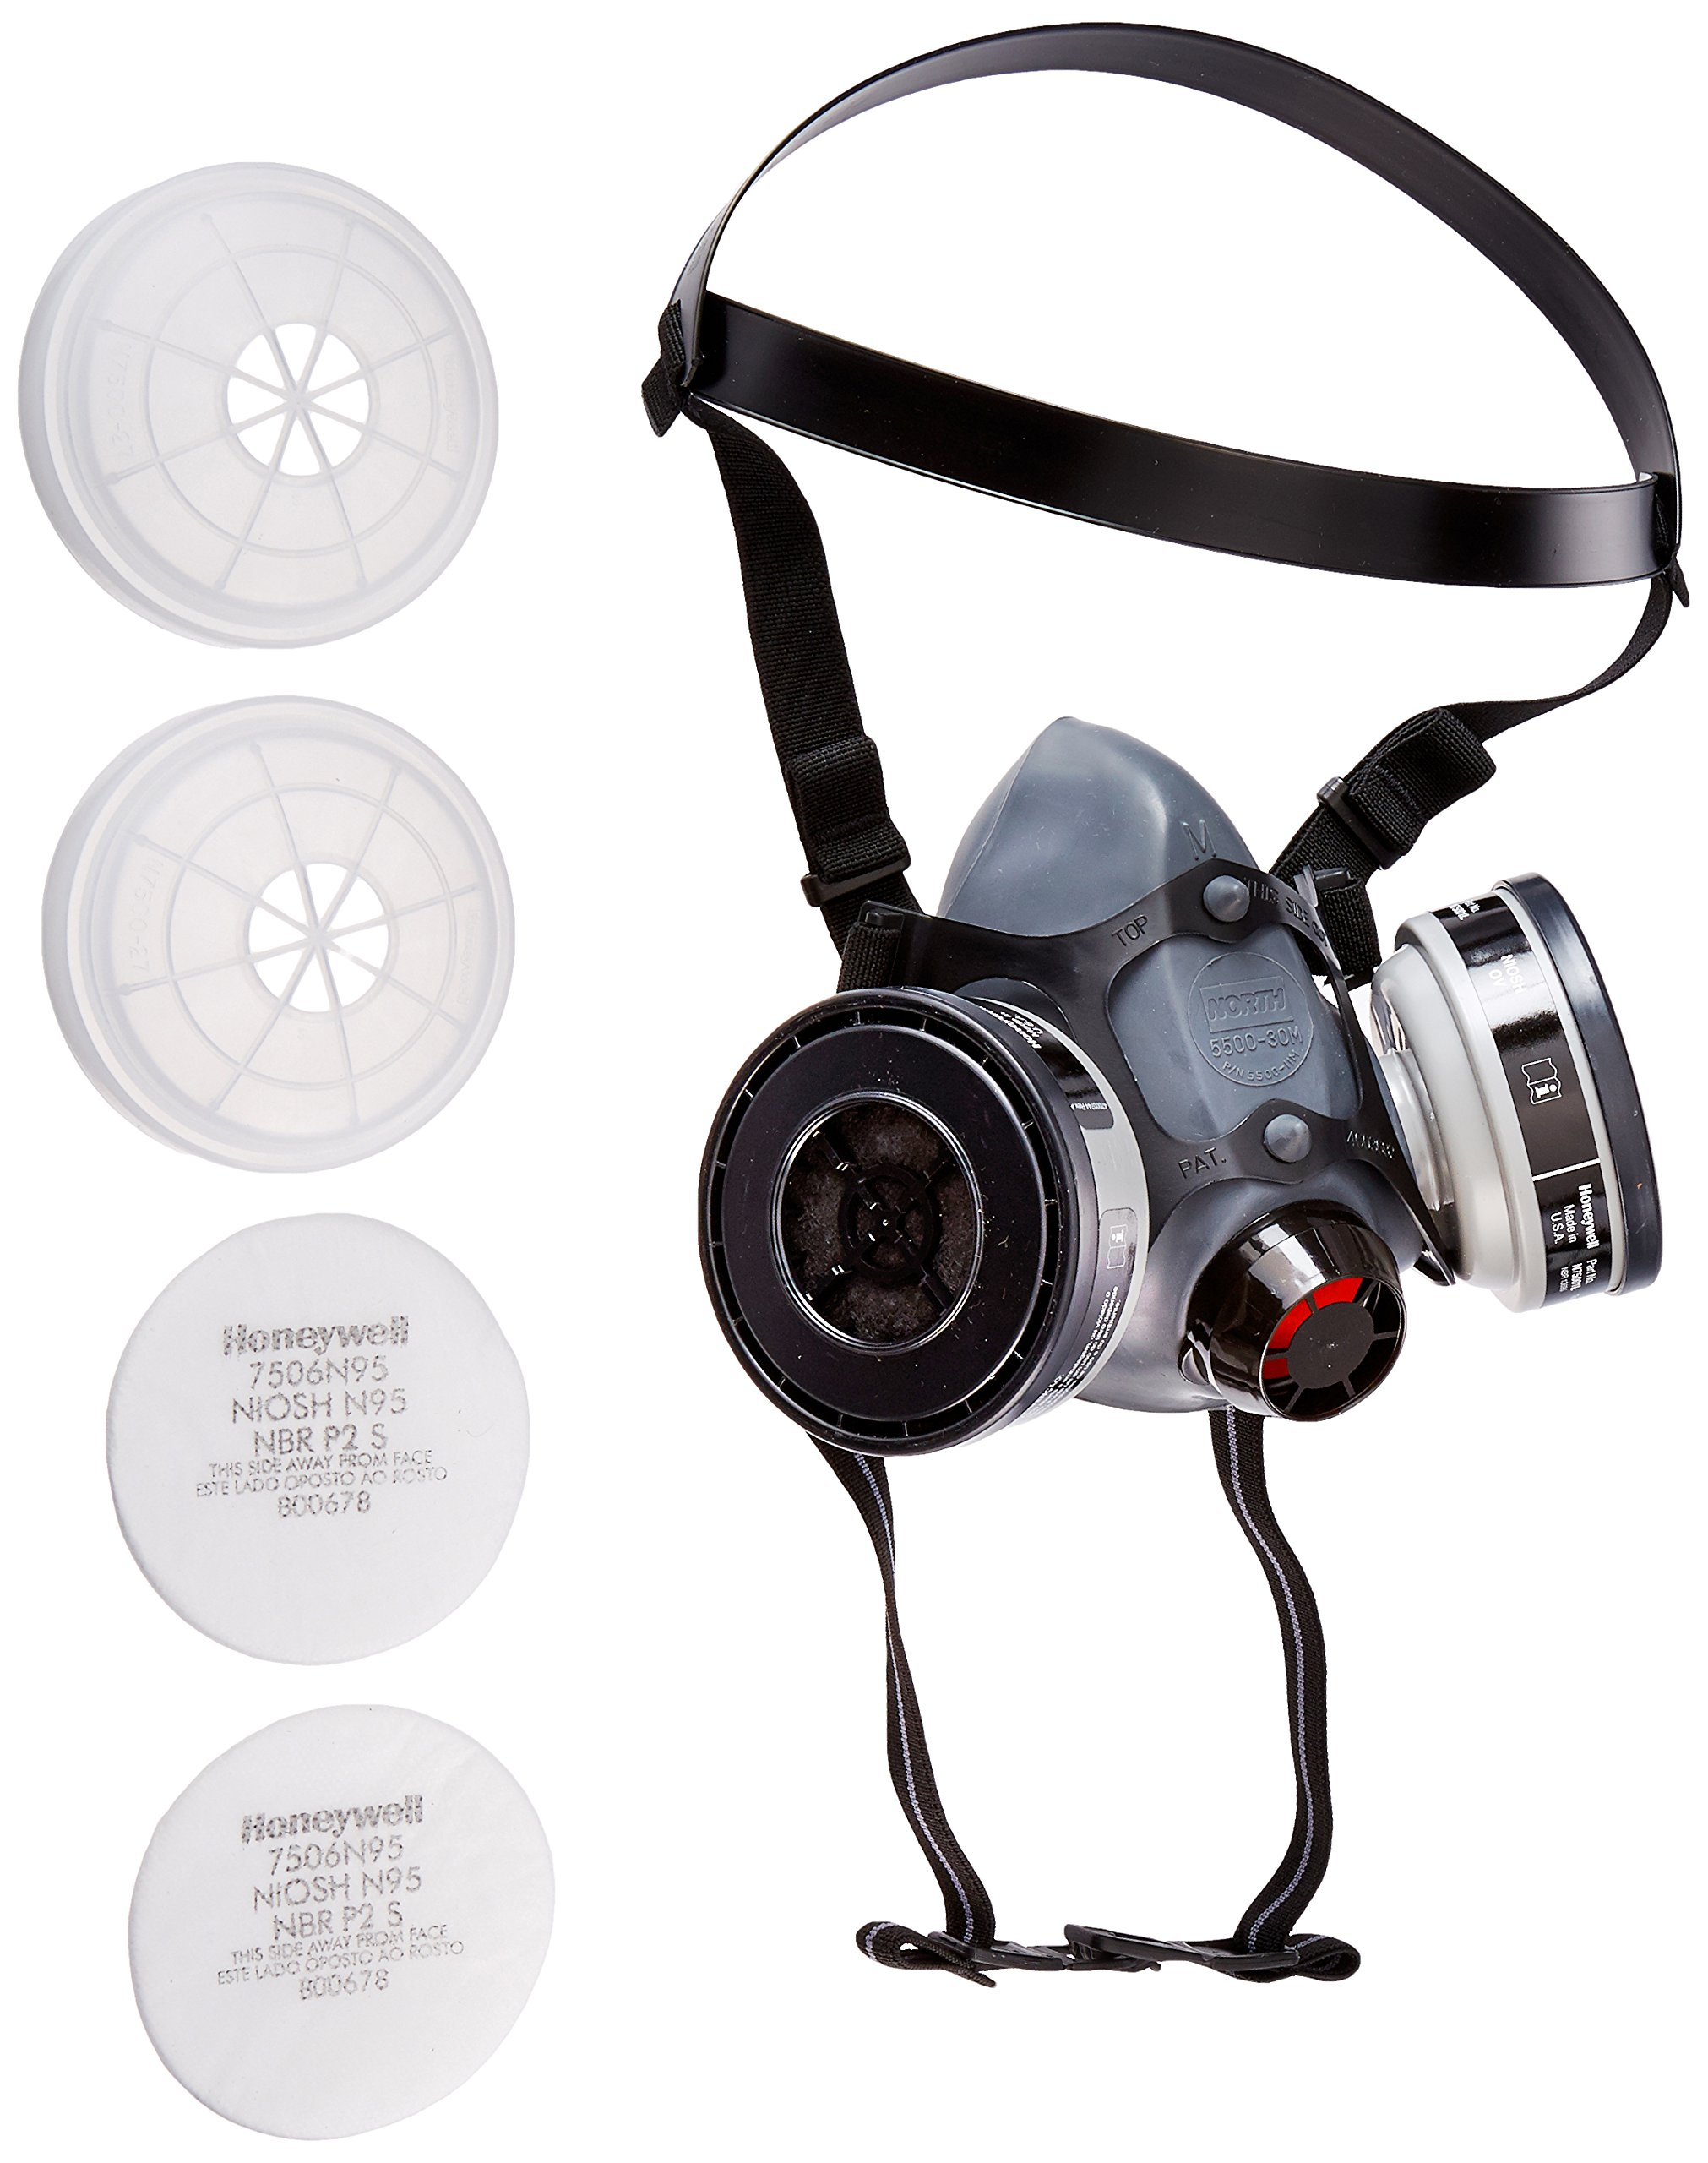 5500 Series Half Mask with 2 Organic Vapor Cartridges, 2 N95 Filters & 2 Filter Cover, Size Medium